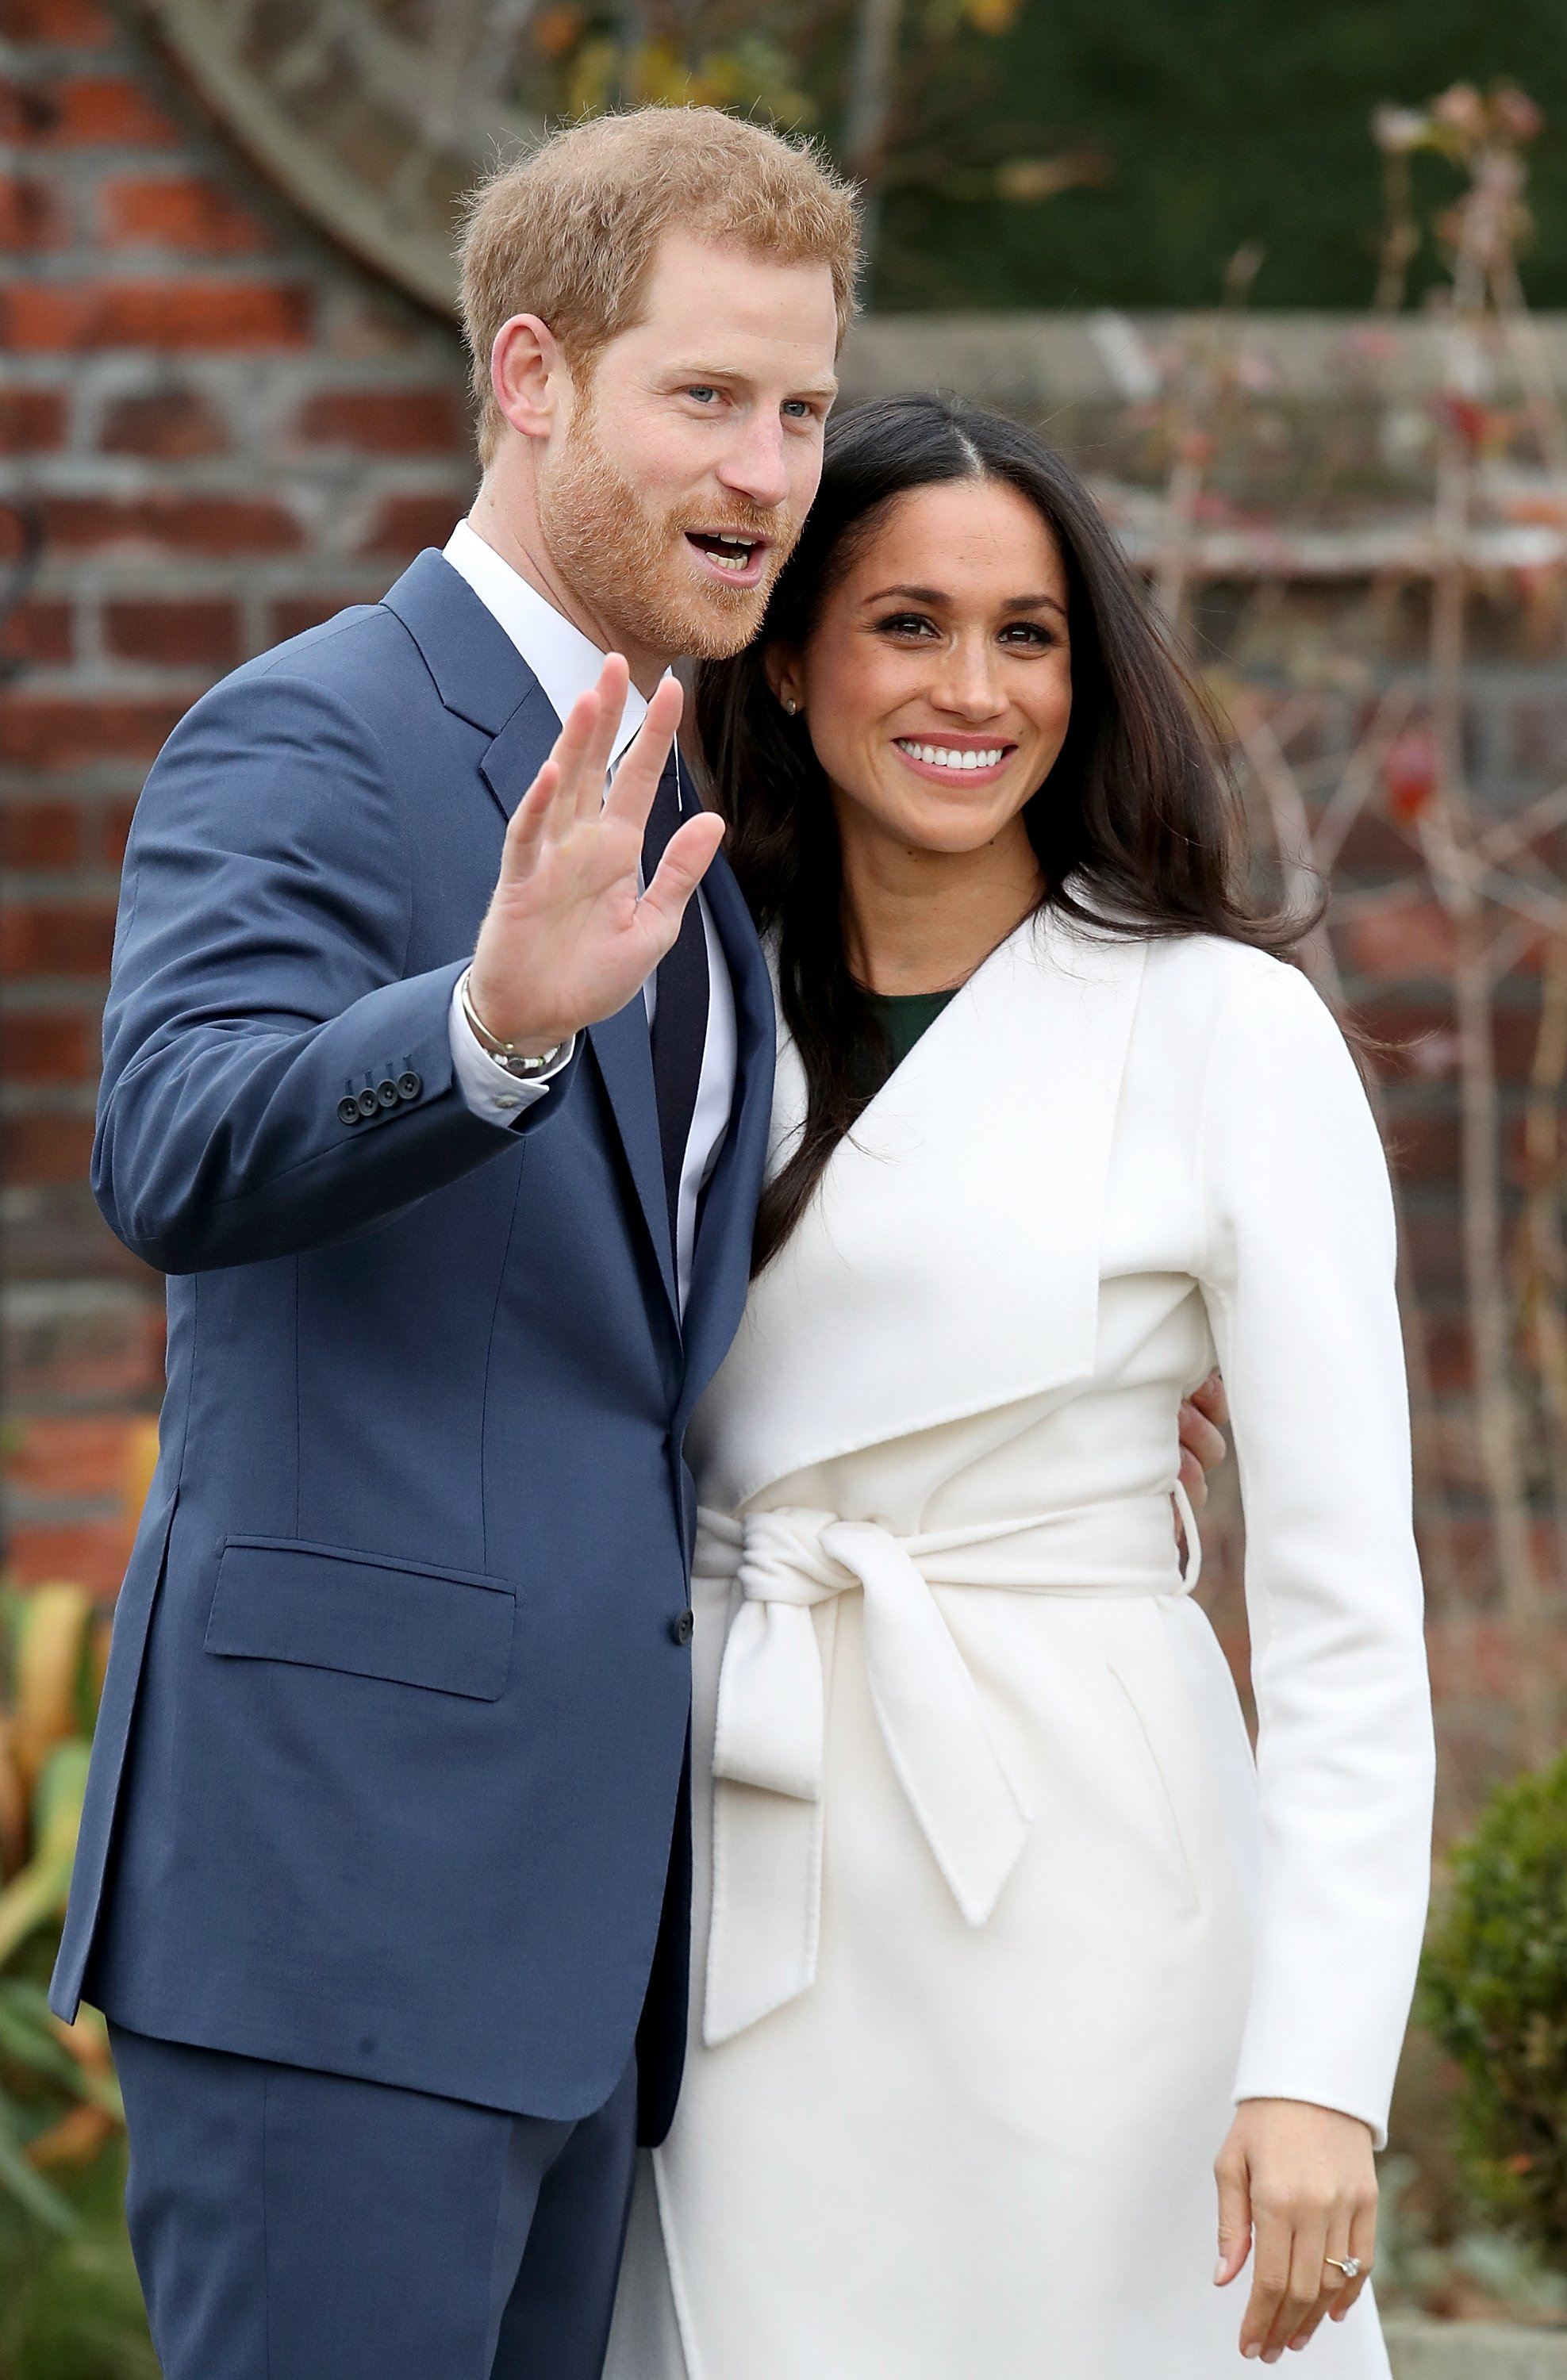 The Duke and Duchess of Sussex, Prince Harry and Meghan Markle, posing for the photographers at the Sunken Gardens at Kensington Palace following their engagement | Photo: Getty Images